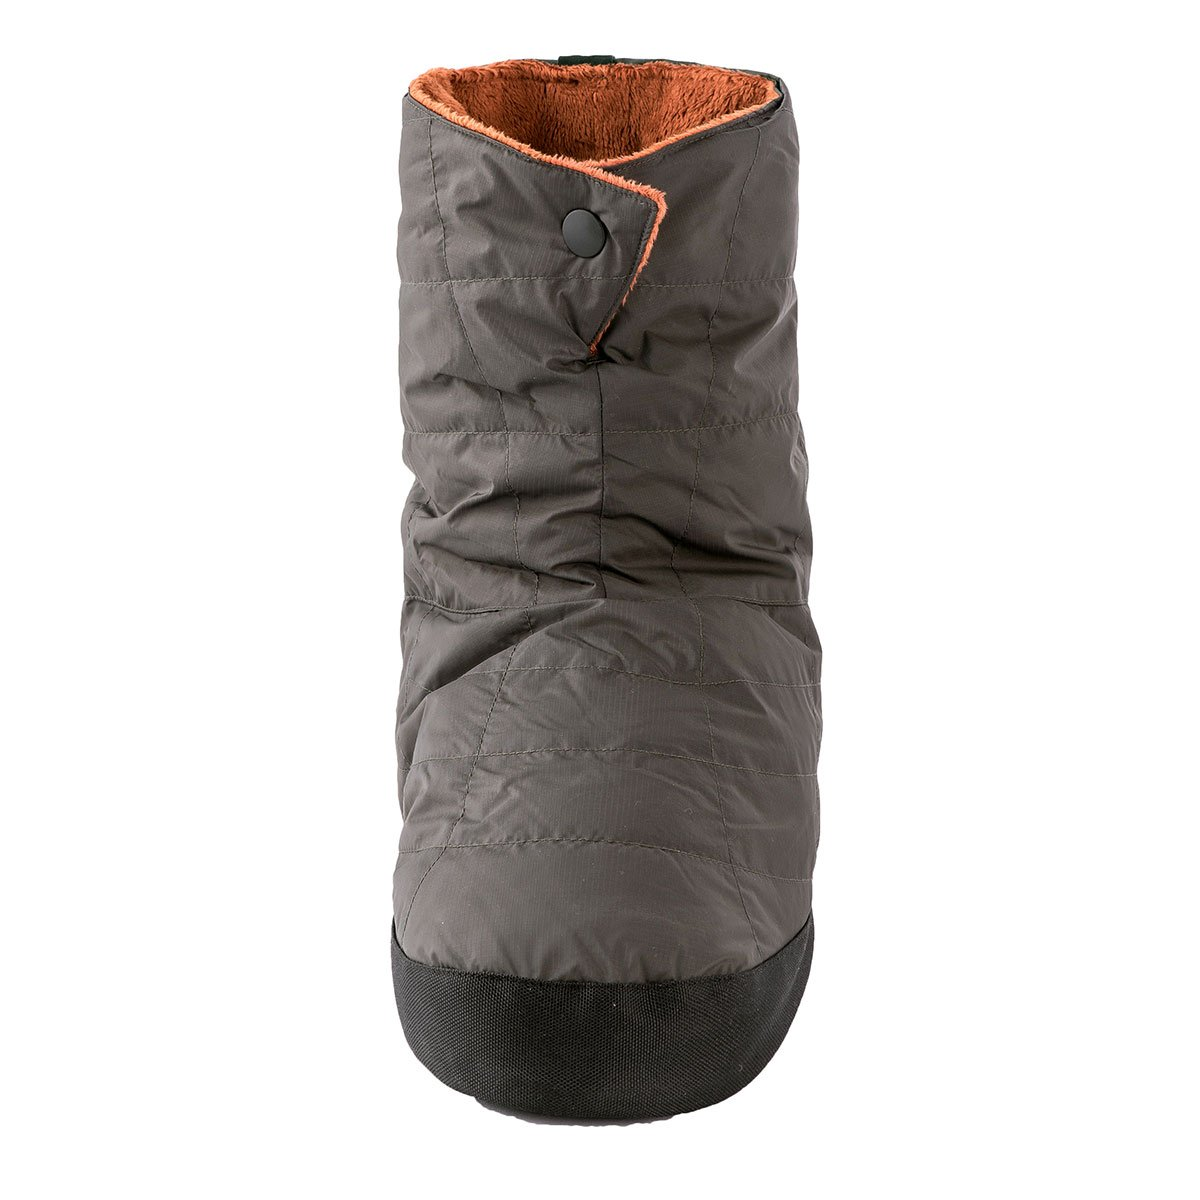 Cabiniste Men's Down Insulated Bootie (Medium, Pewter/Copper) by Cabiniste (Image #4)